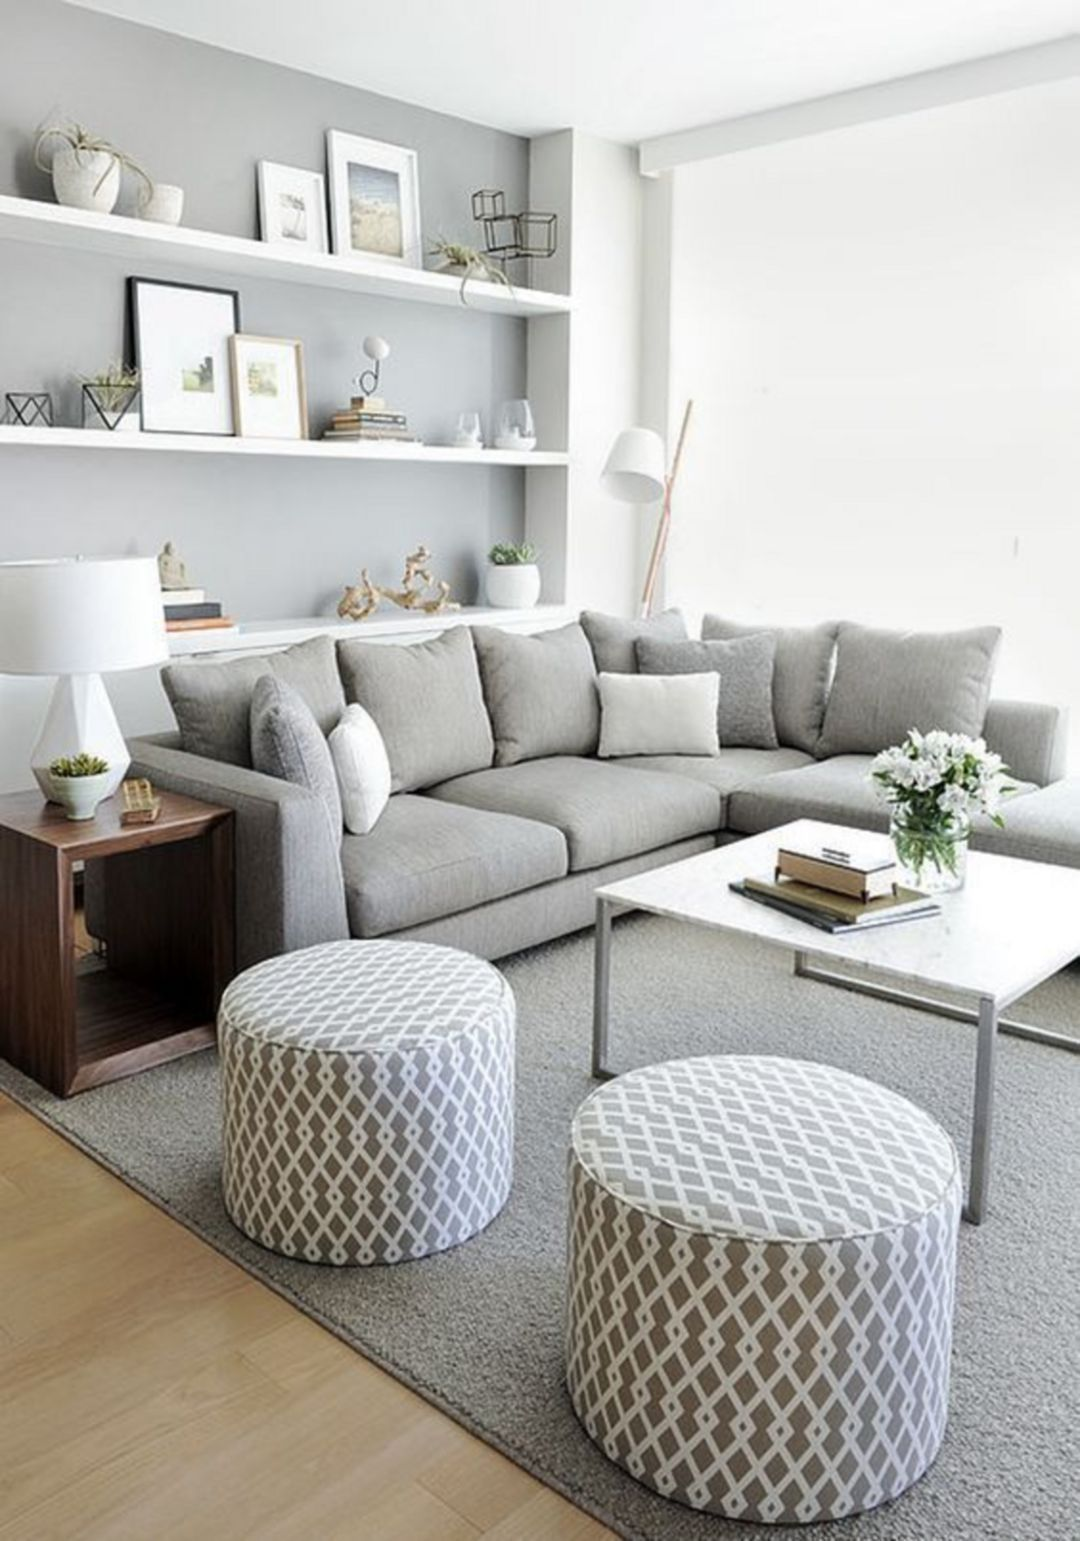 30 Cozy Apartment Living Room Decorating Ideas That You Nee